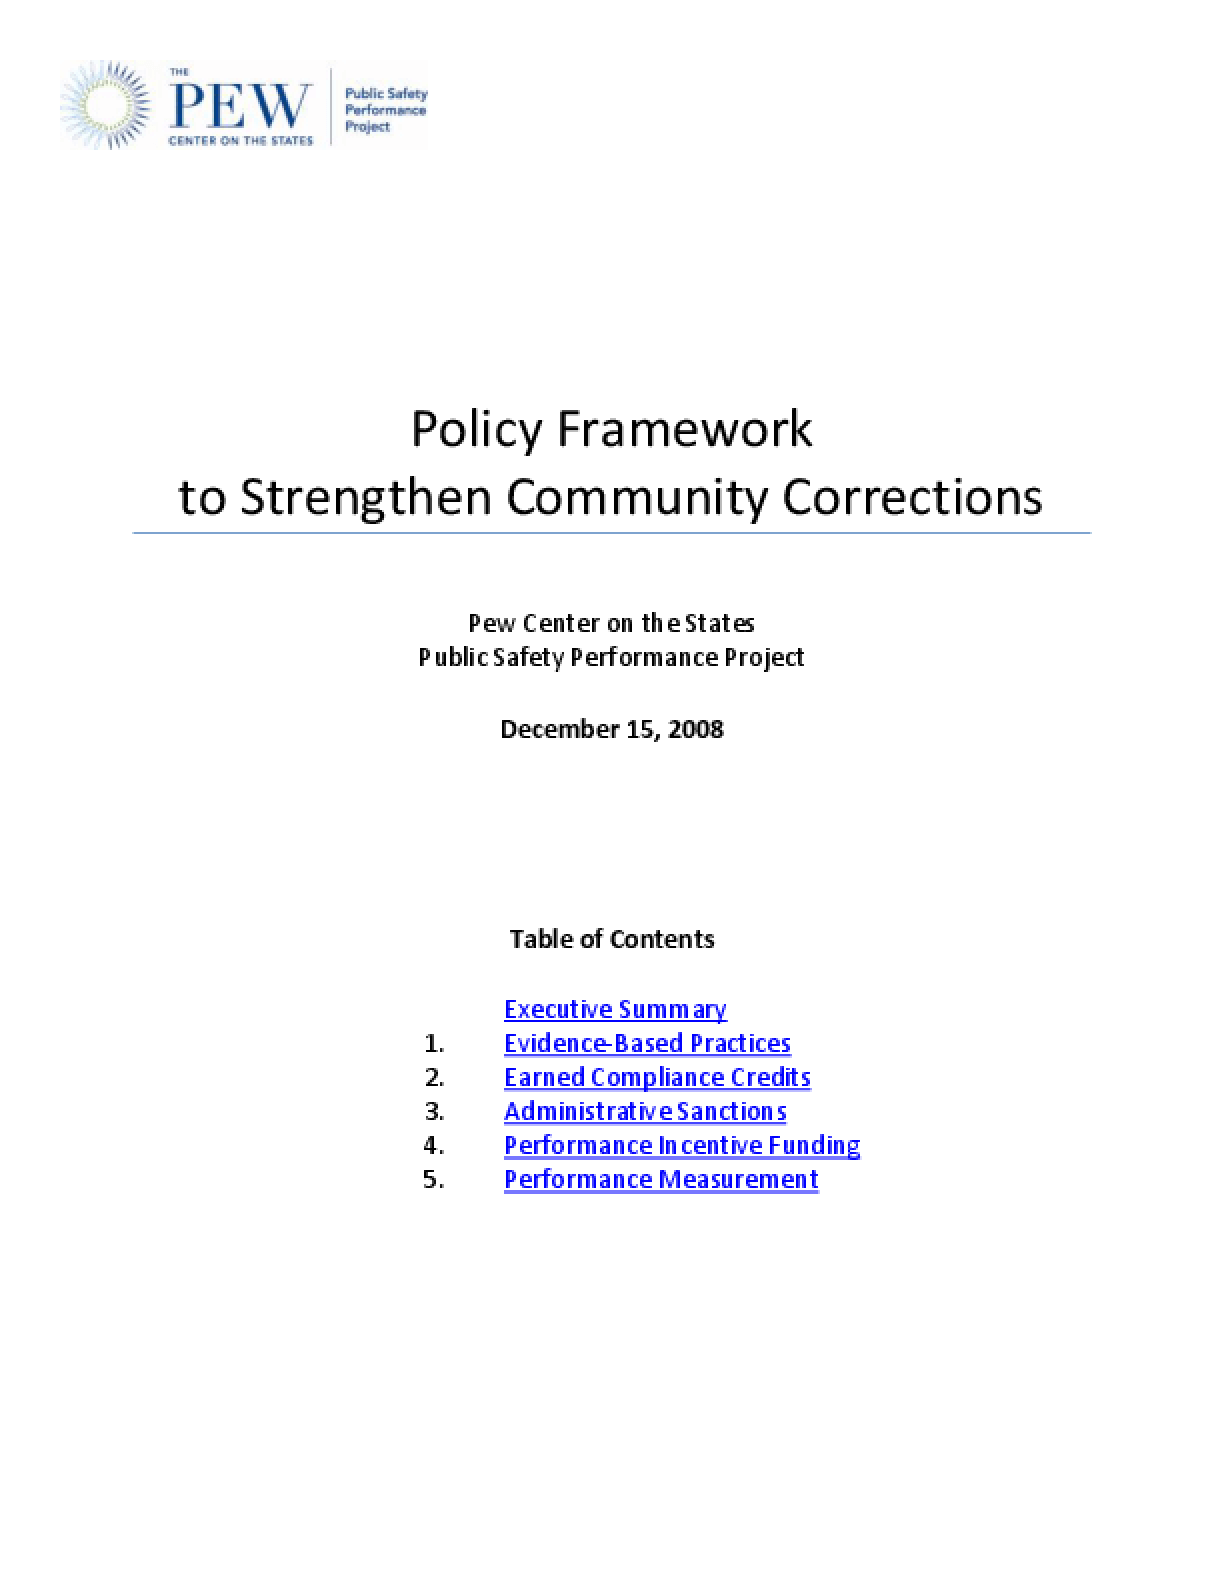 Policy Framework to Strengthen Community Corrections